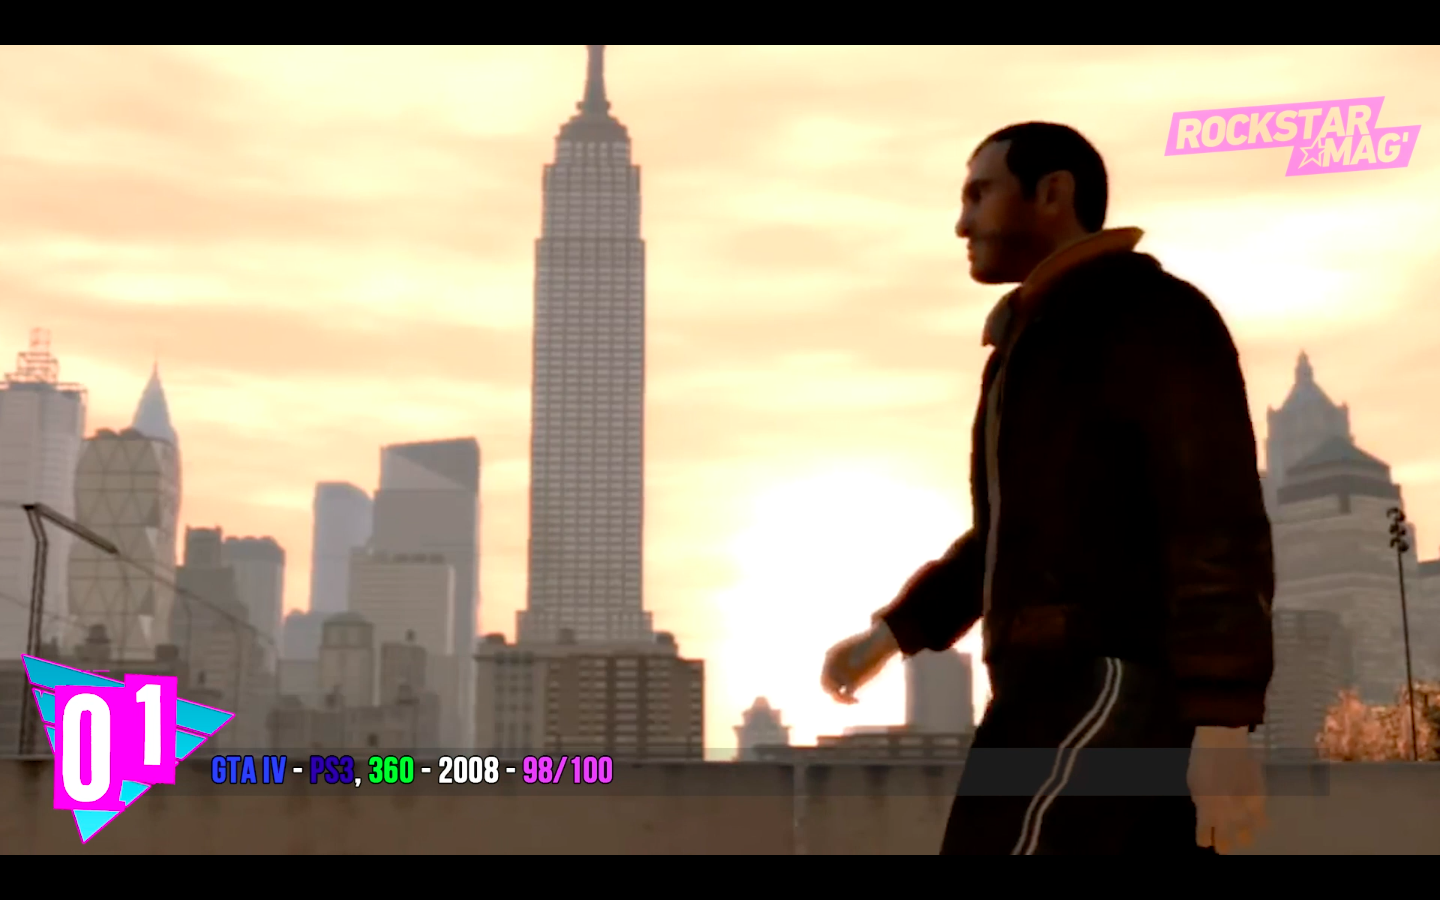 Top 05 - 01 - GTA IV